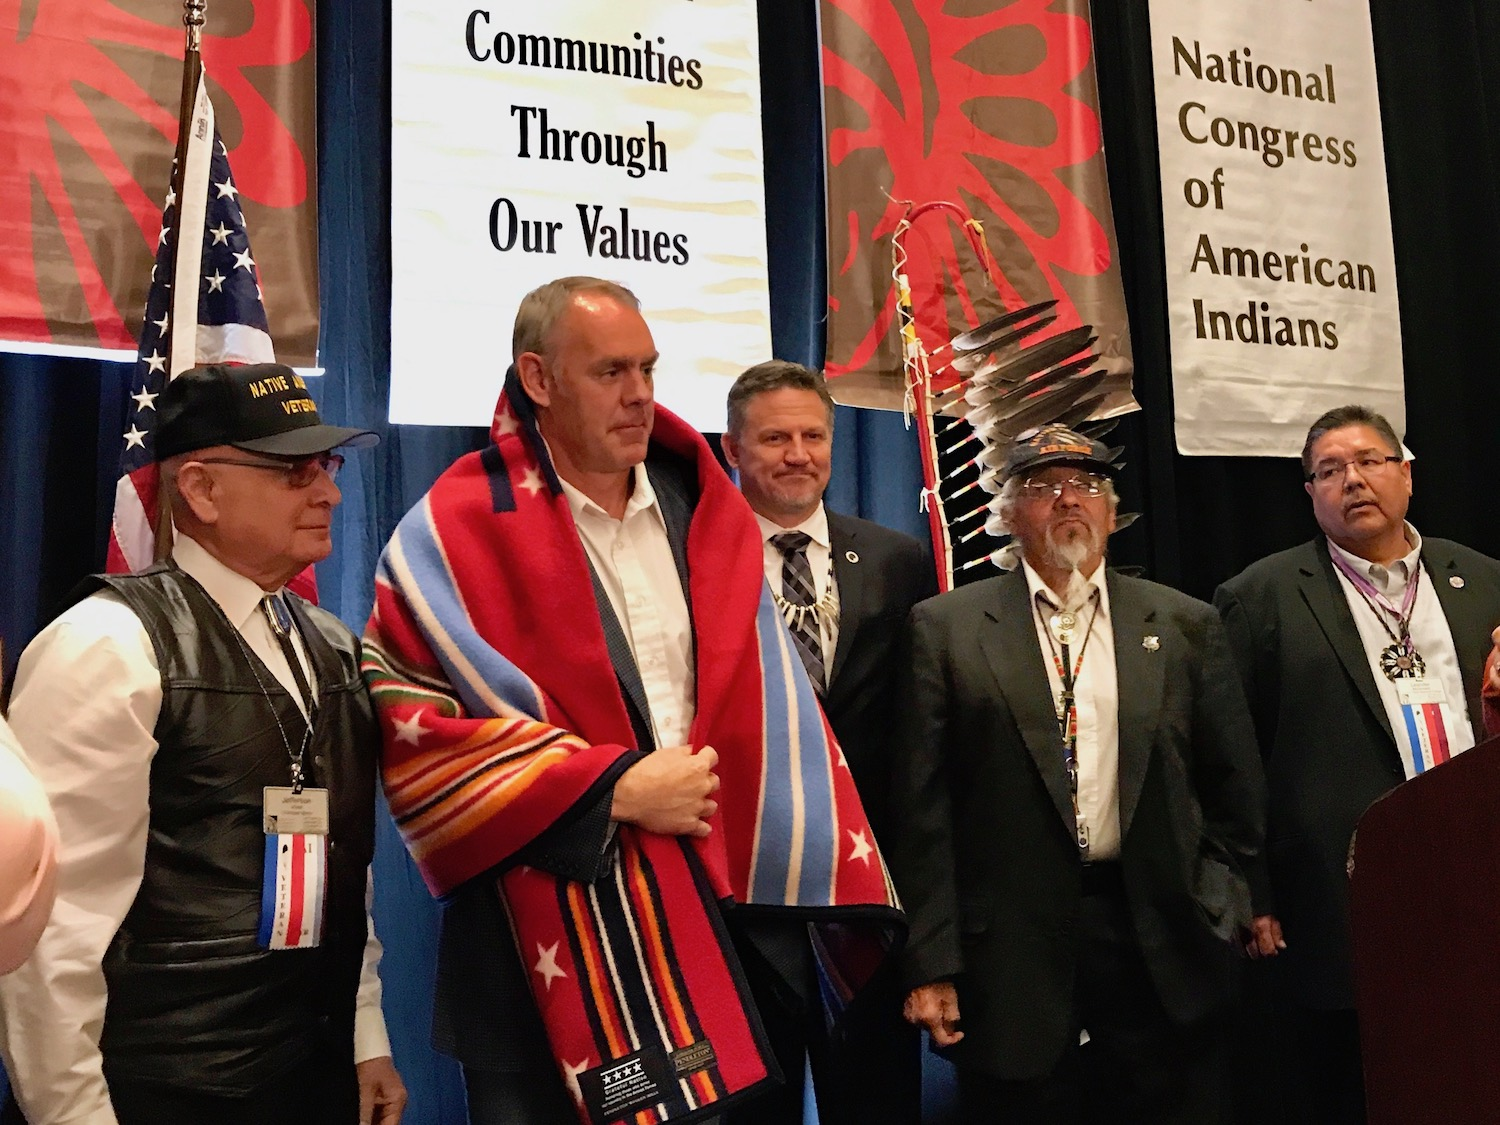 'Significant political pressure': Former Secretary Zinke under scrutiny in tribal lawsuit